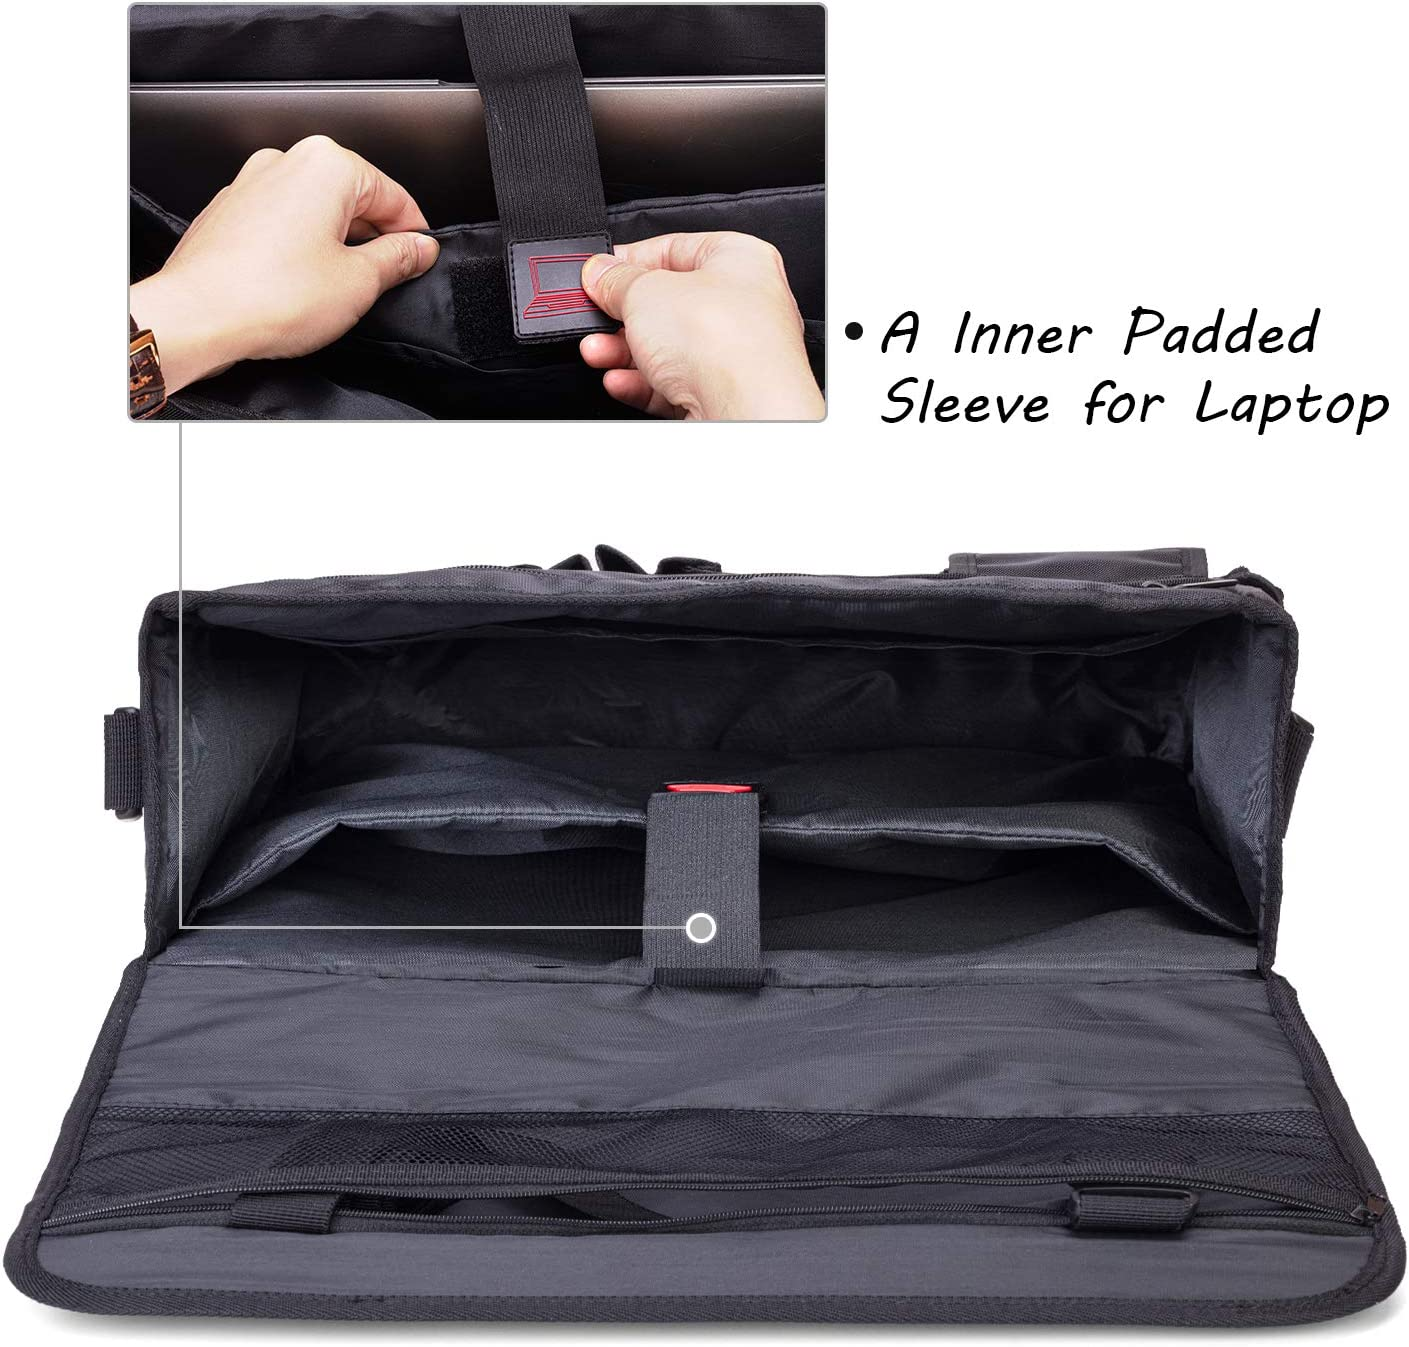 Perfect for Law Enforcement Patent Design Easily Transferred to Handbag Shoulder Bag Passenger Seat Storage Bag with Padded Sleeve for Laptop Curmio Car Front Seat Organizer Police Patrol